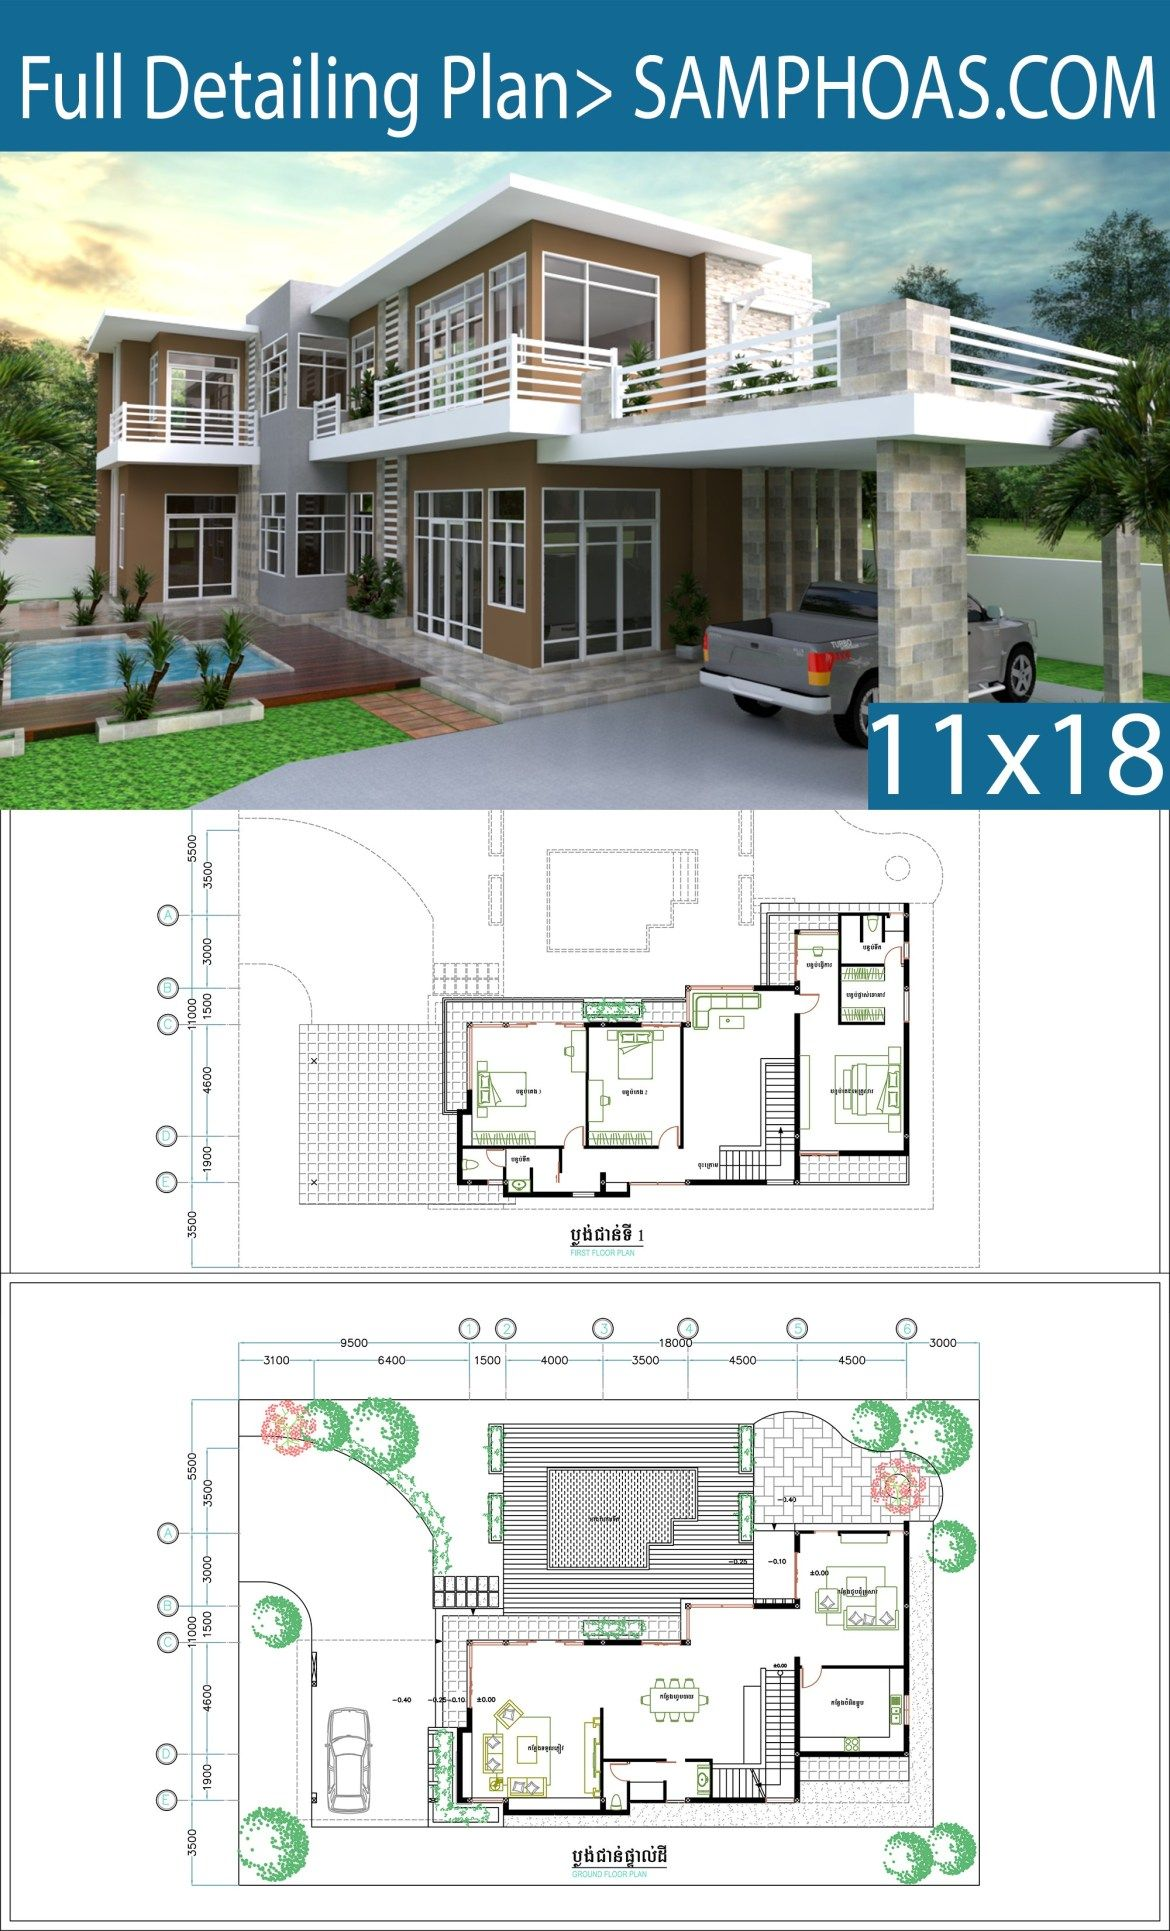 3 Bedrooms Villa Design Plan 11x18m Samphoas Plansearch Villa Design Residential Architecture Plan Home Design Floor Plans